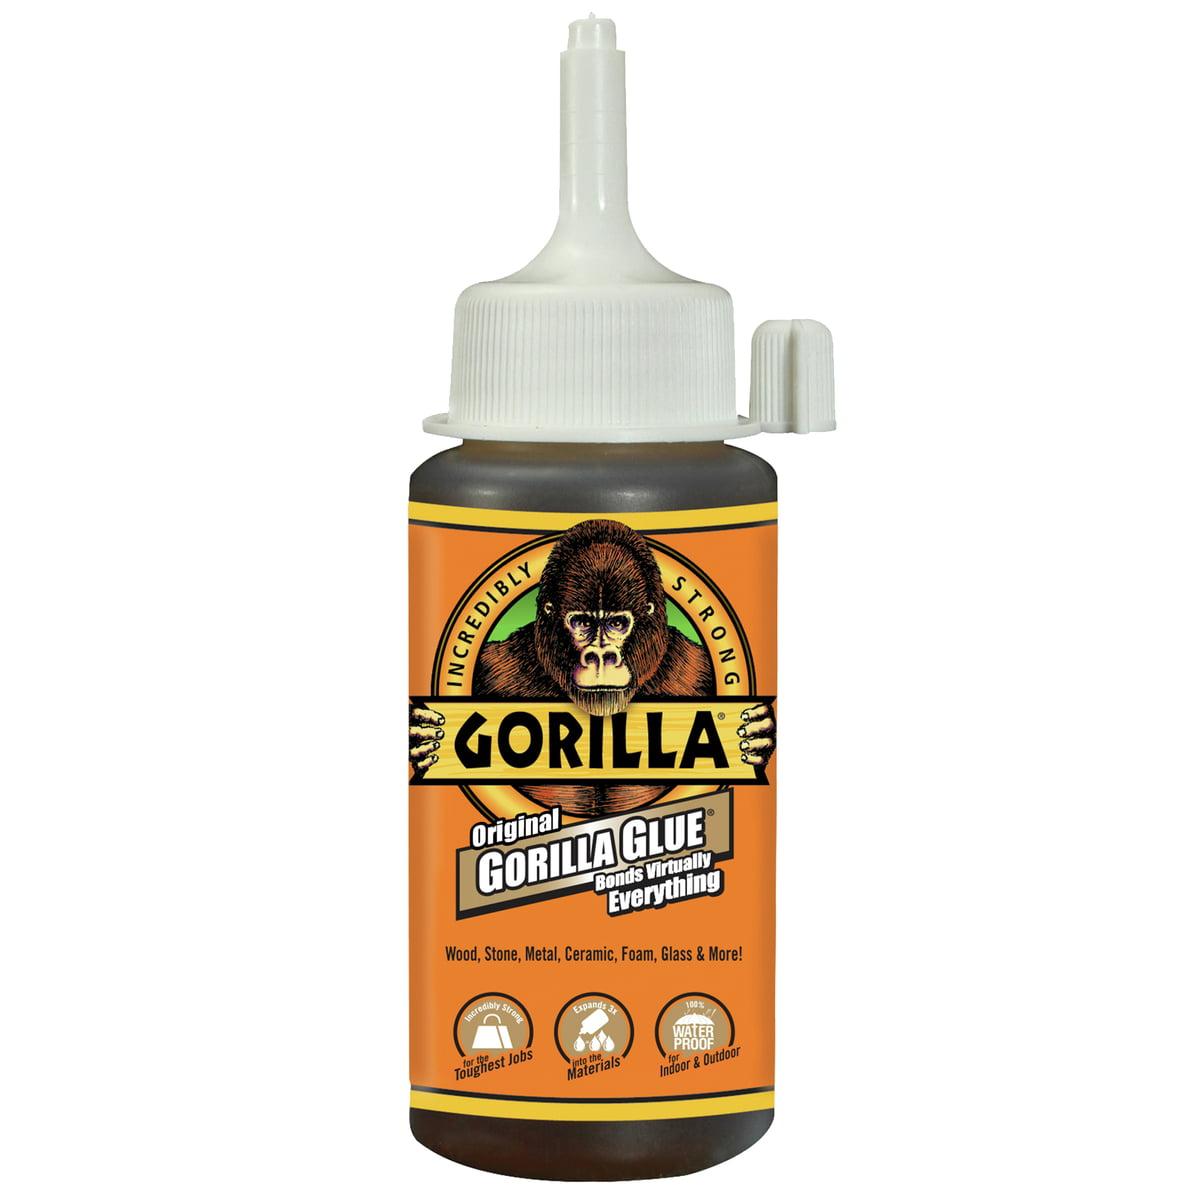 Gorilla Glue Co Original Gorilla Glue, 4 oz.